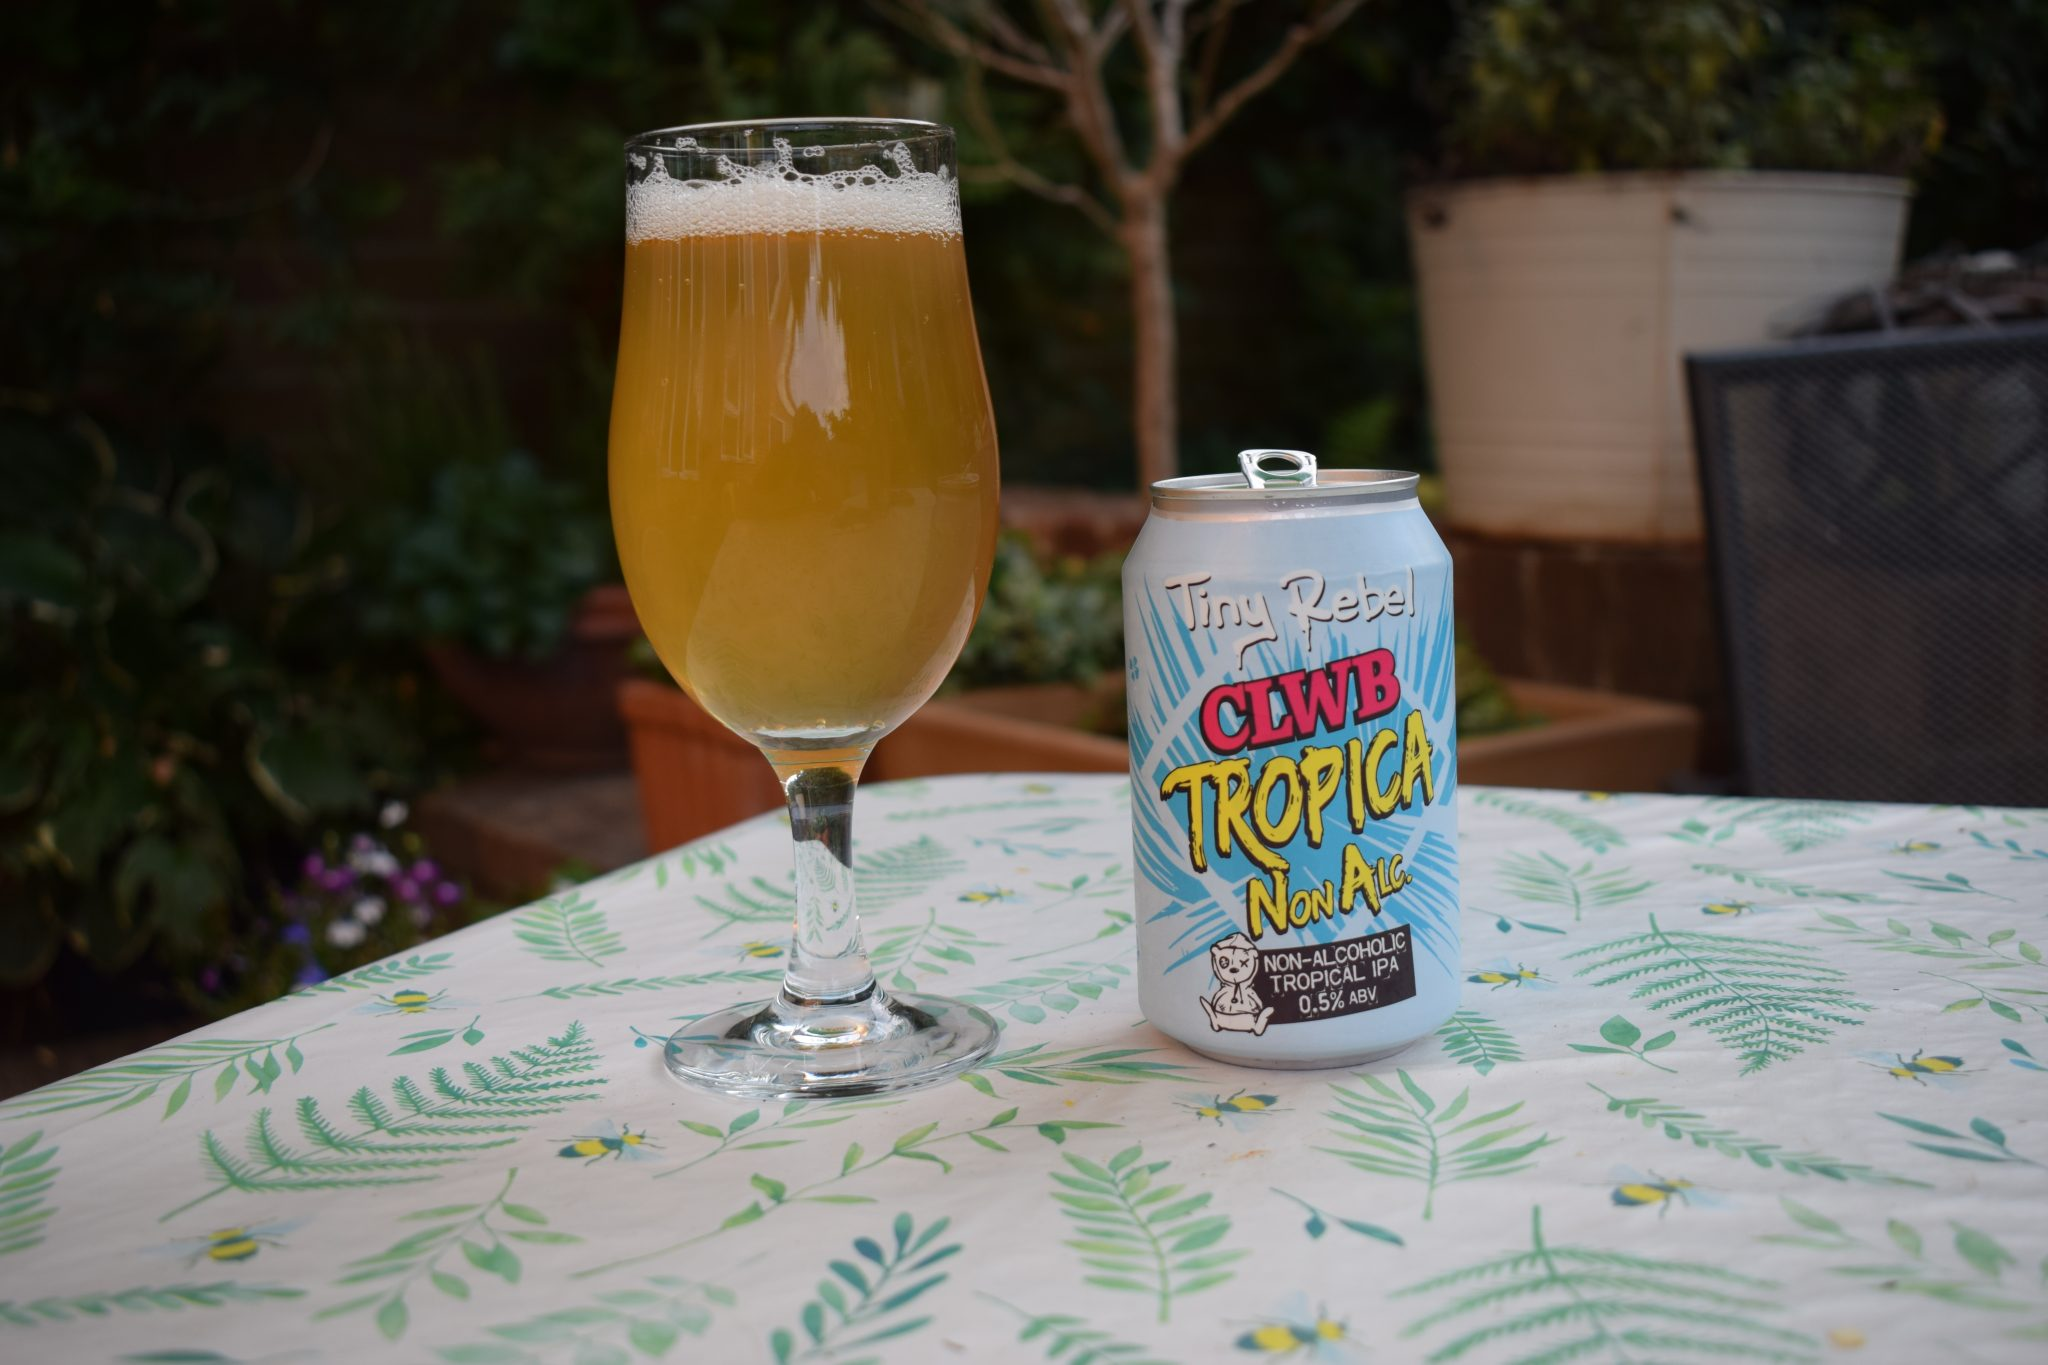 """Clwb Tropica Non Alc"" (0.5%) by Tiny Rebel"